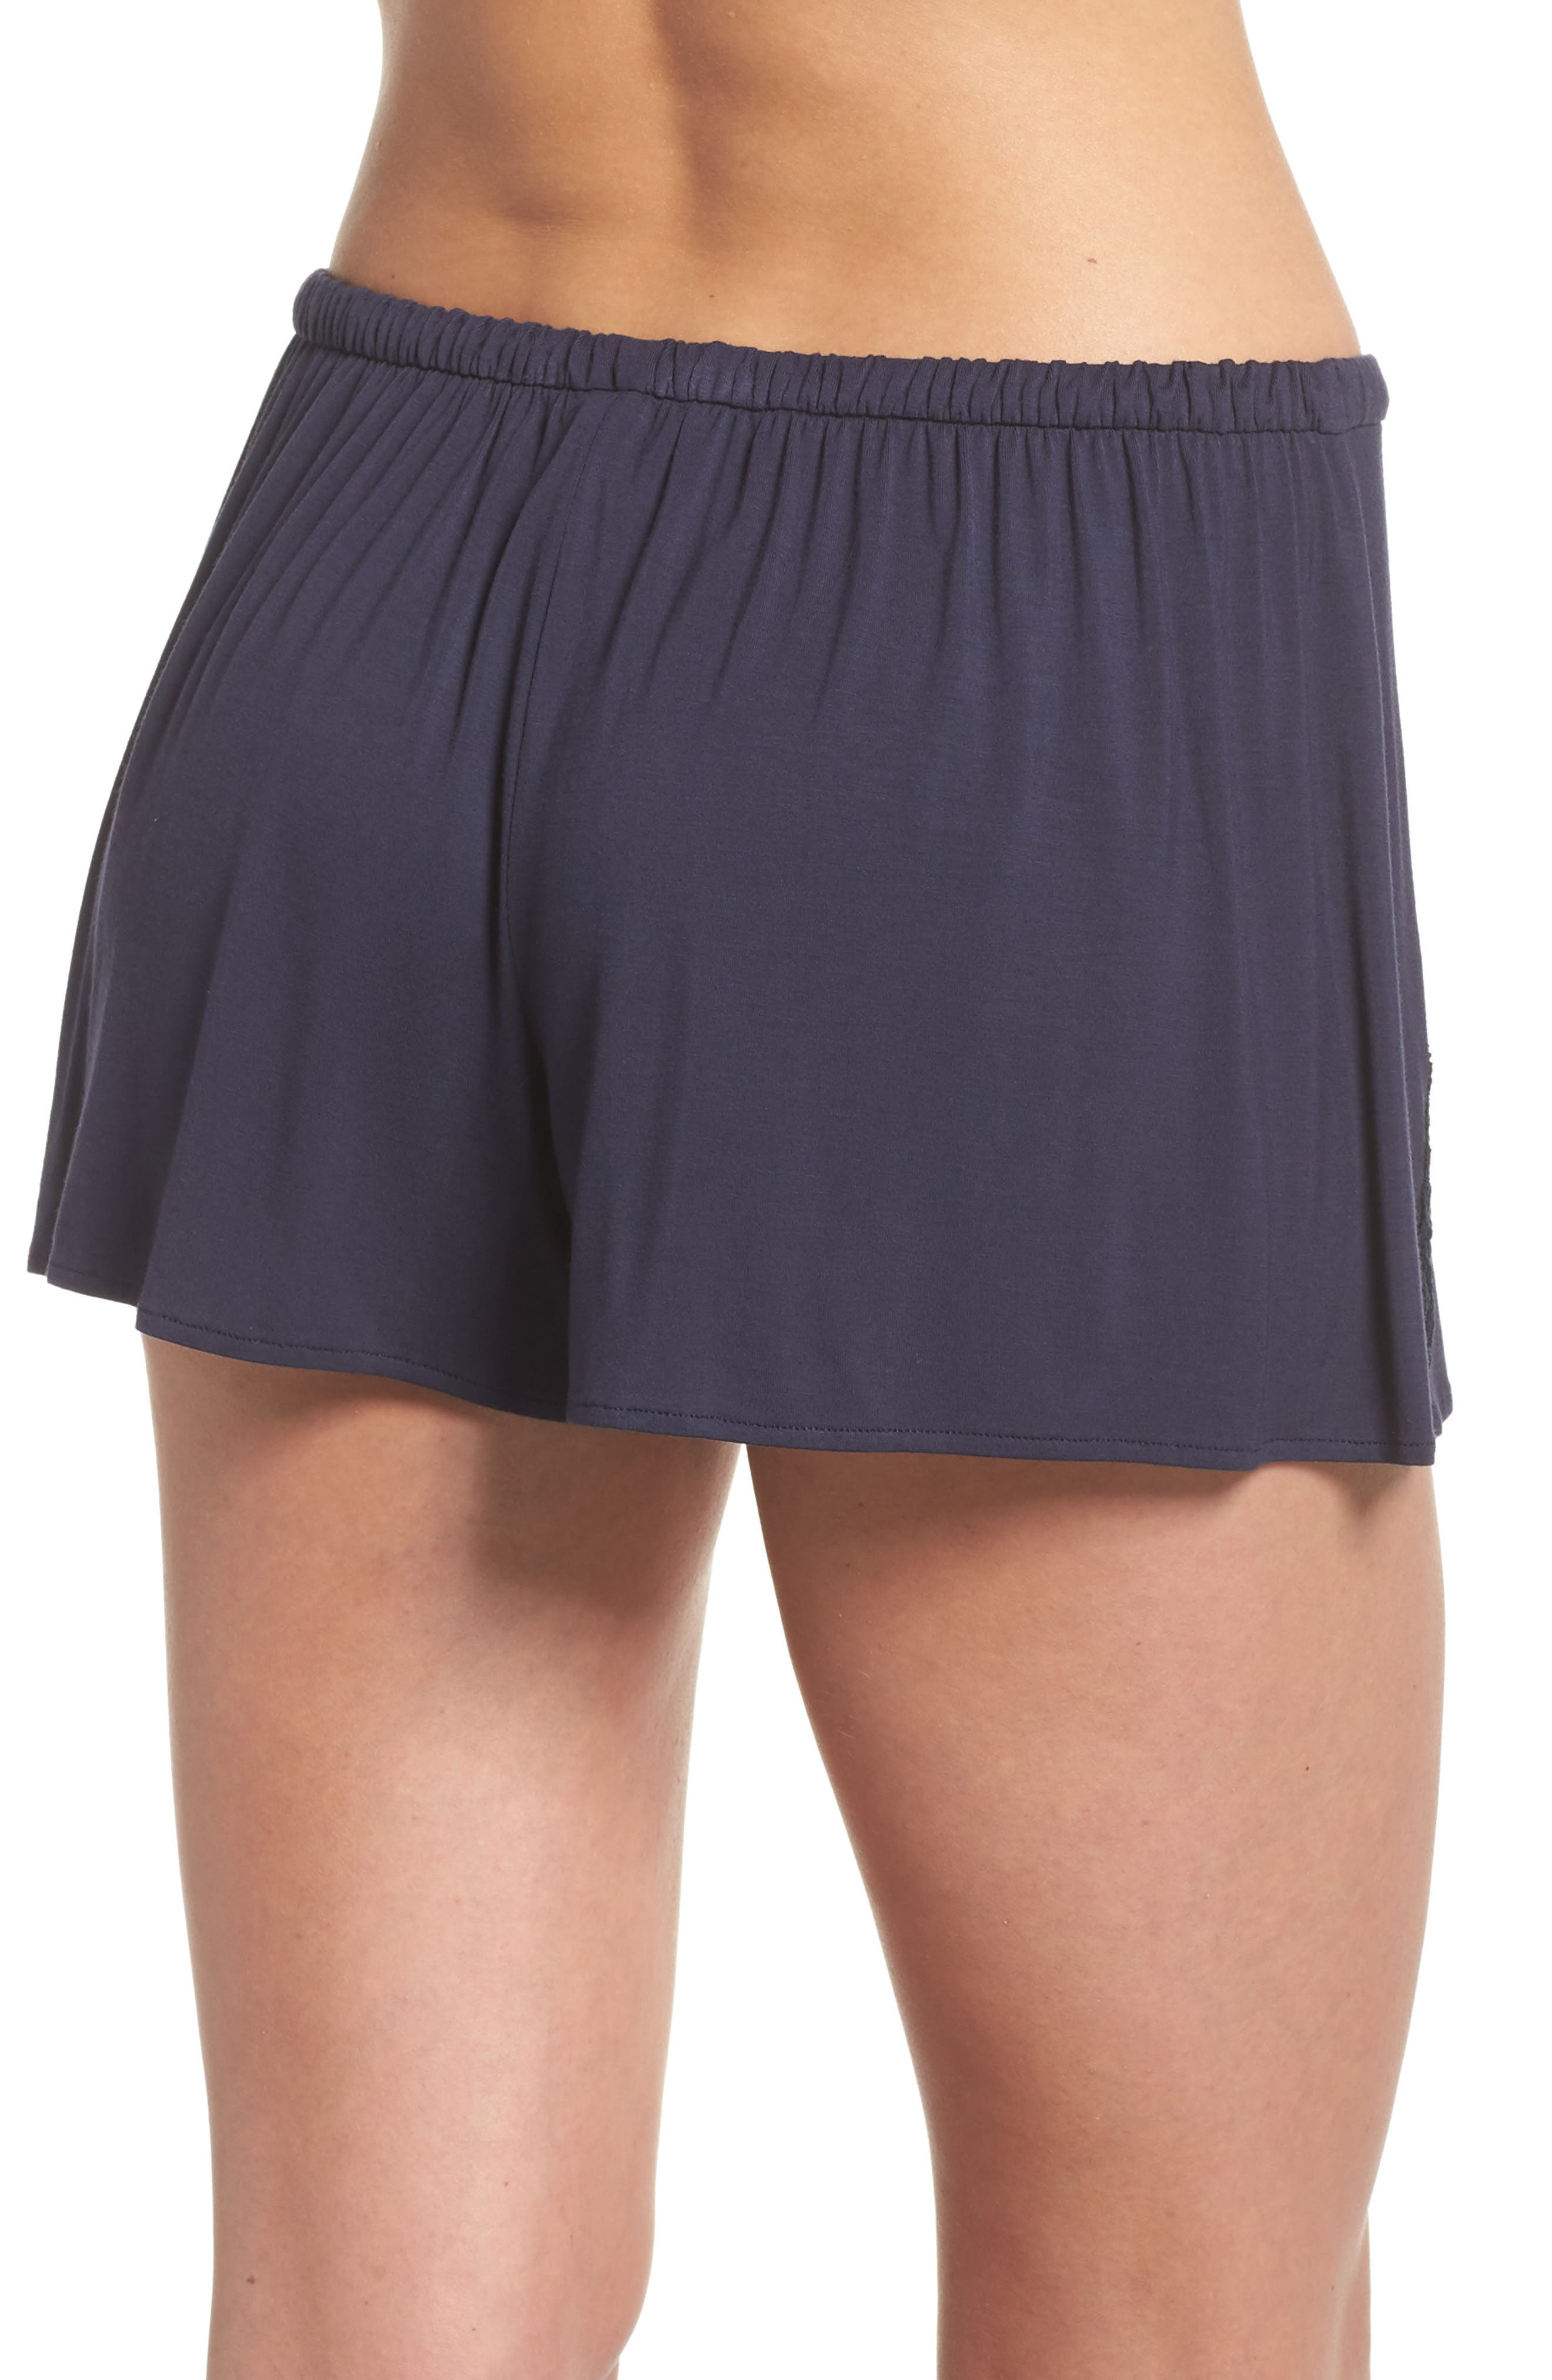 Feathers Essential Pajama Shorts,                             Alternate thumbnail 2, color,                             Night Blue